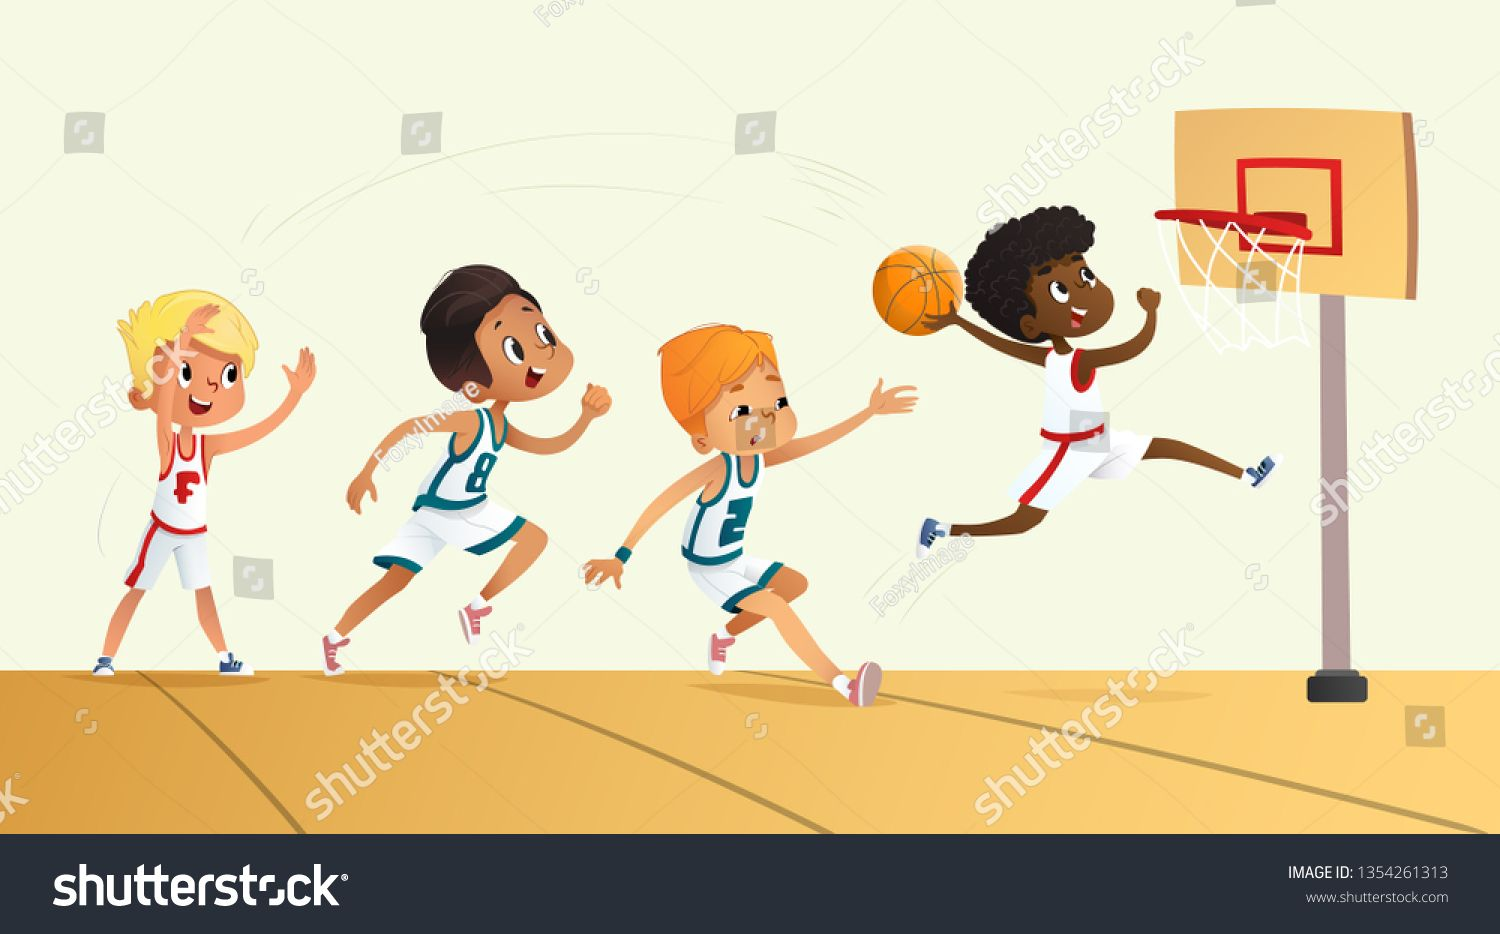 Illustration Of Kids Playing Basketball Team Playing Game Team Competition N Ad Ad Playing Kids Illustration B Children Illustration Kids Playing Kids